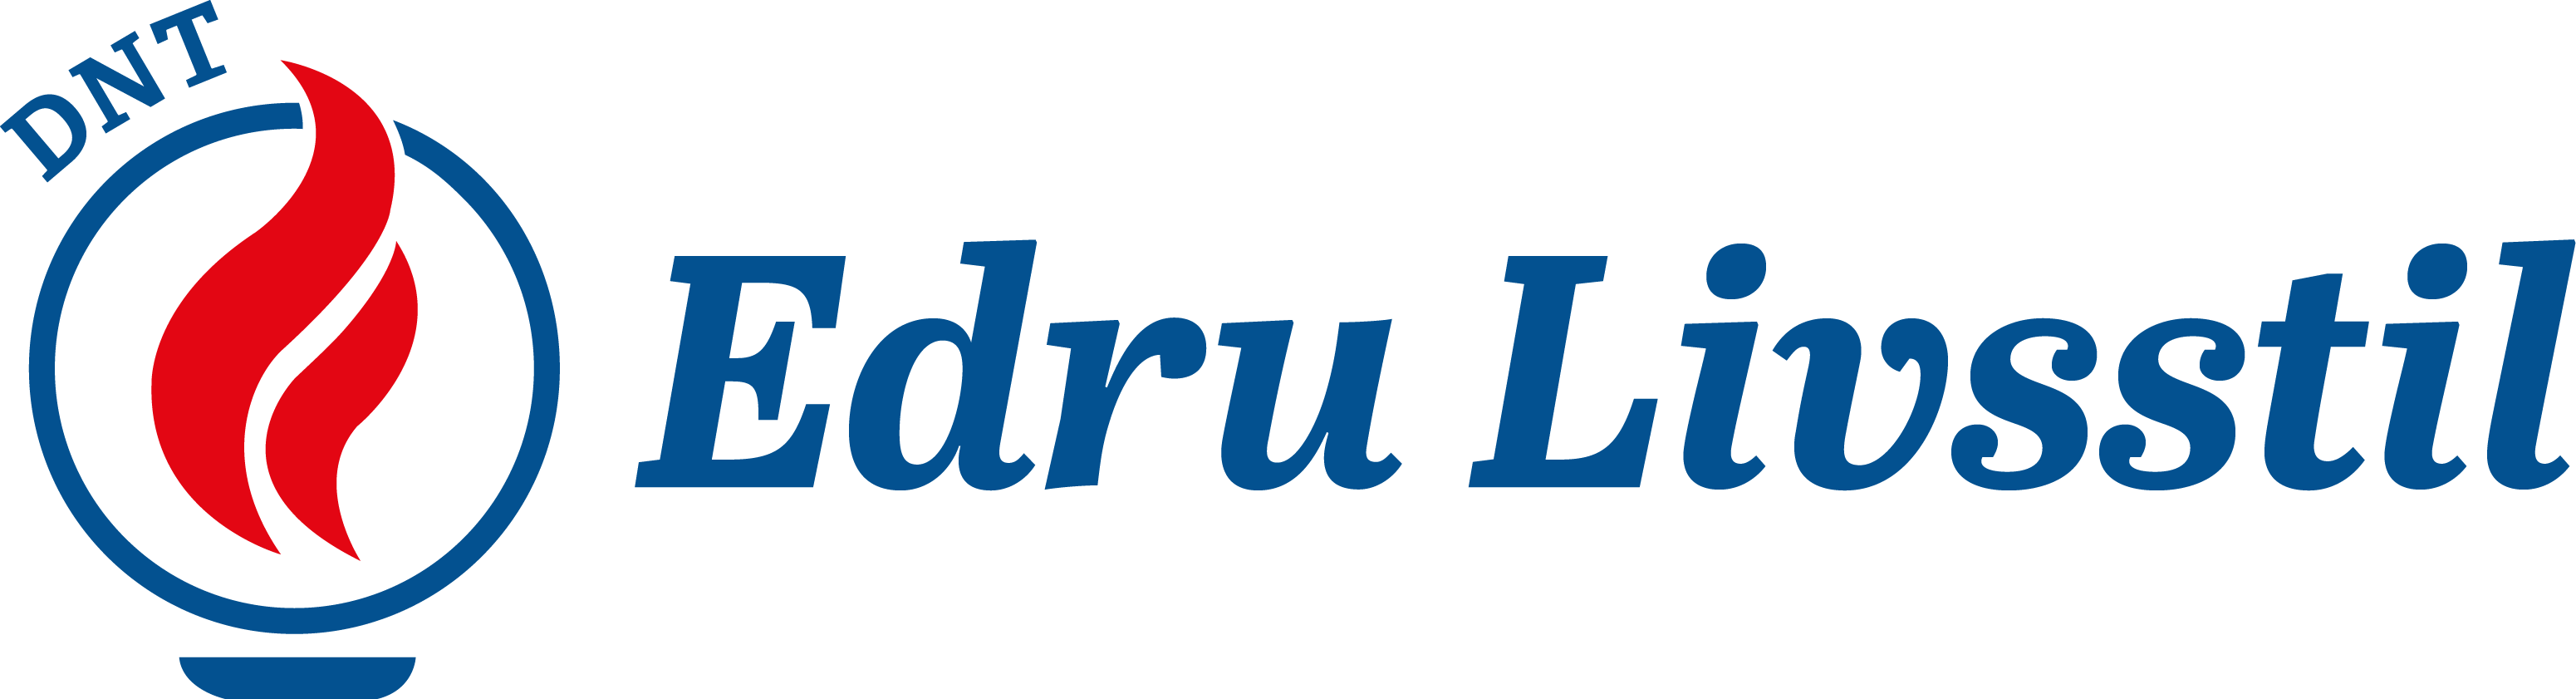 Edru Livsstil